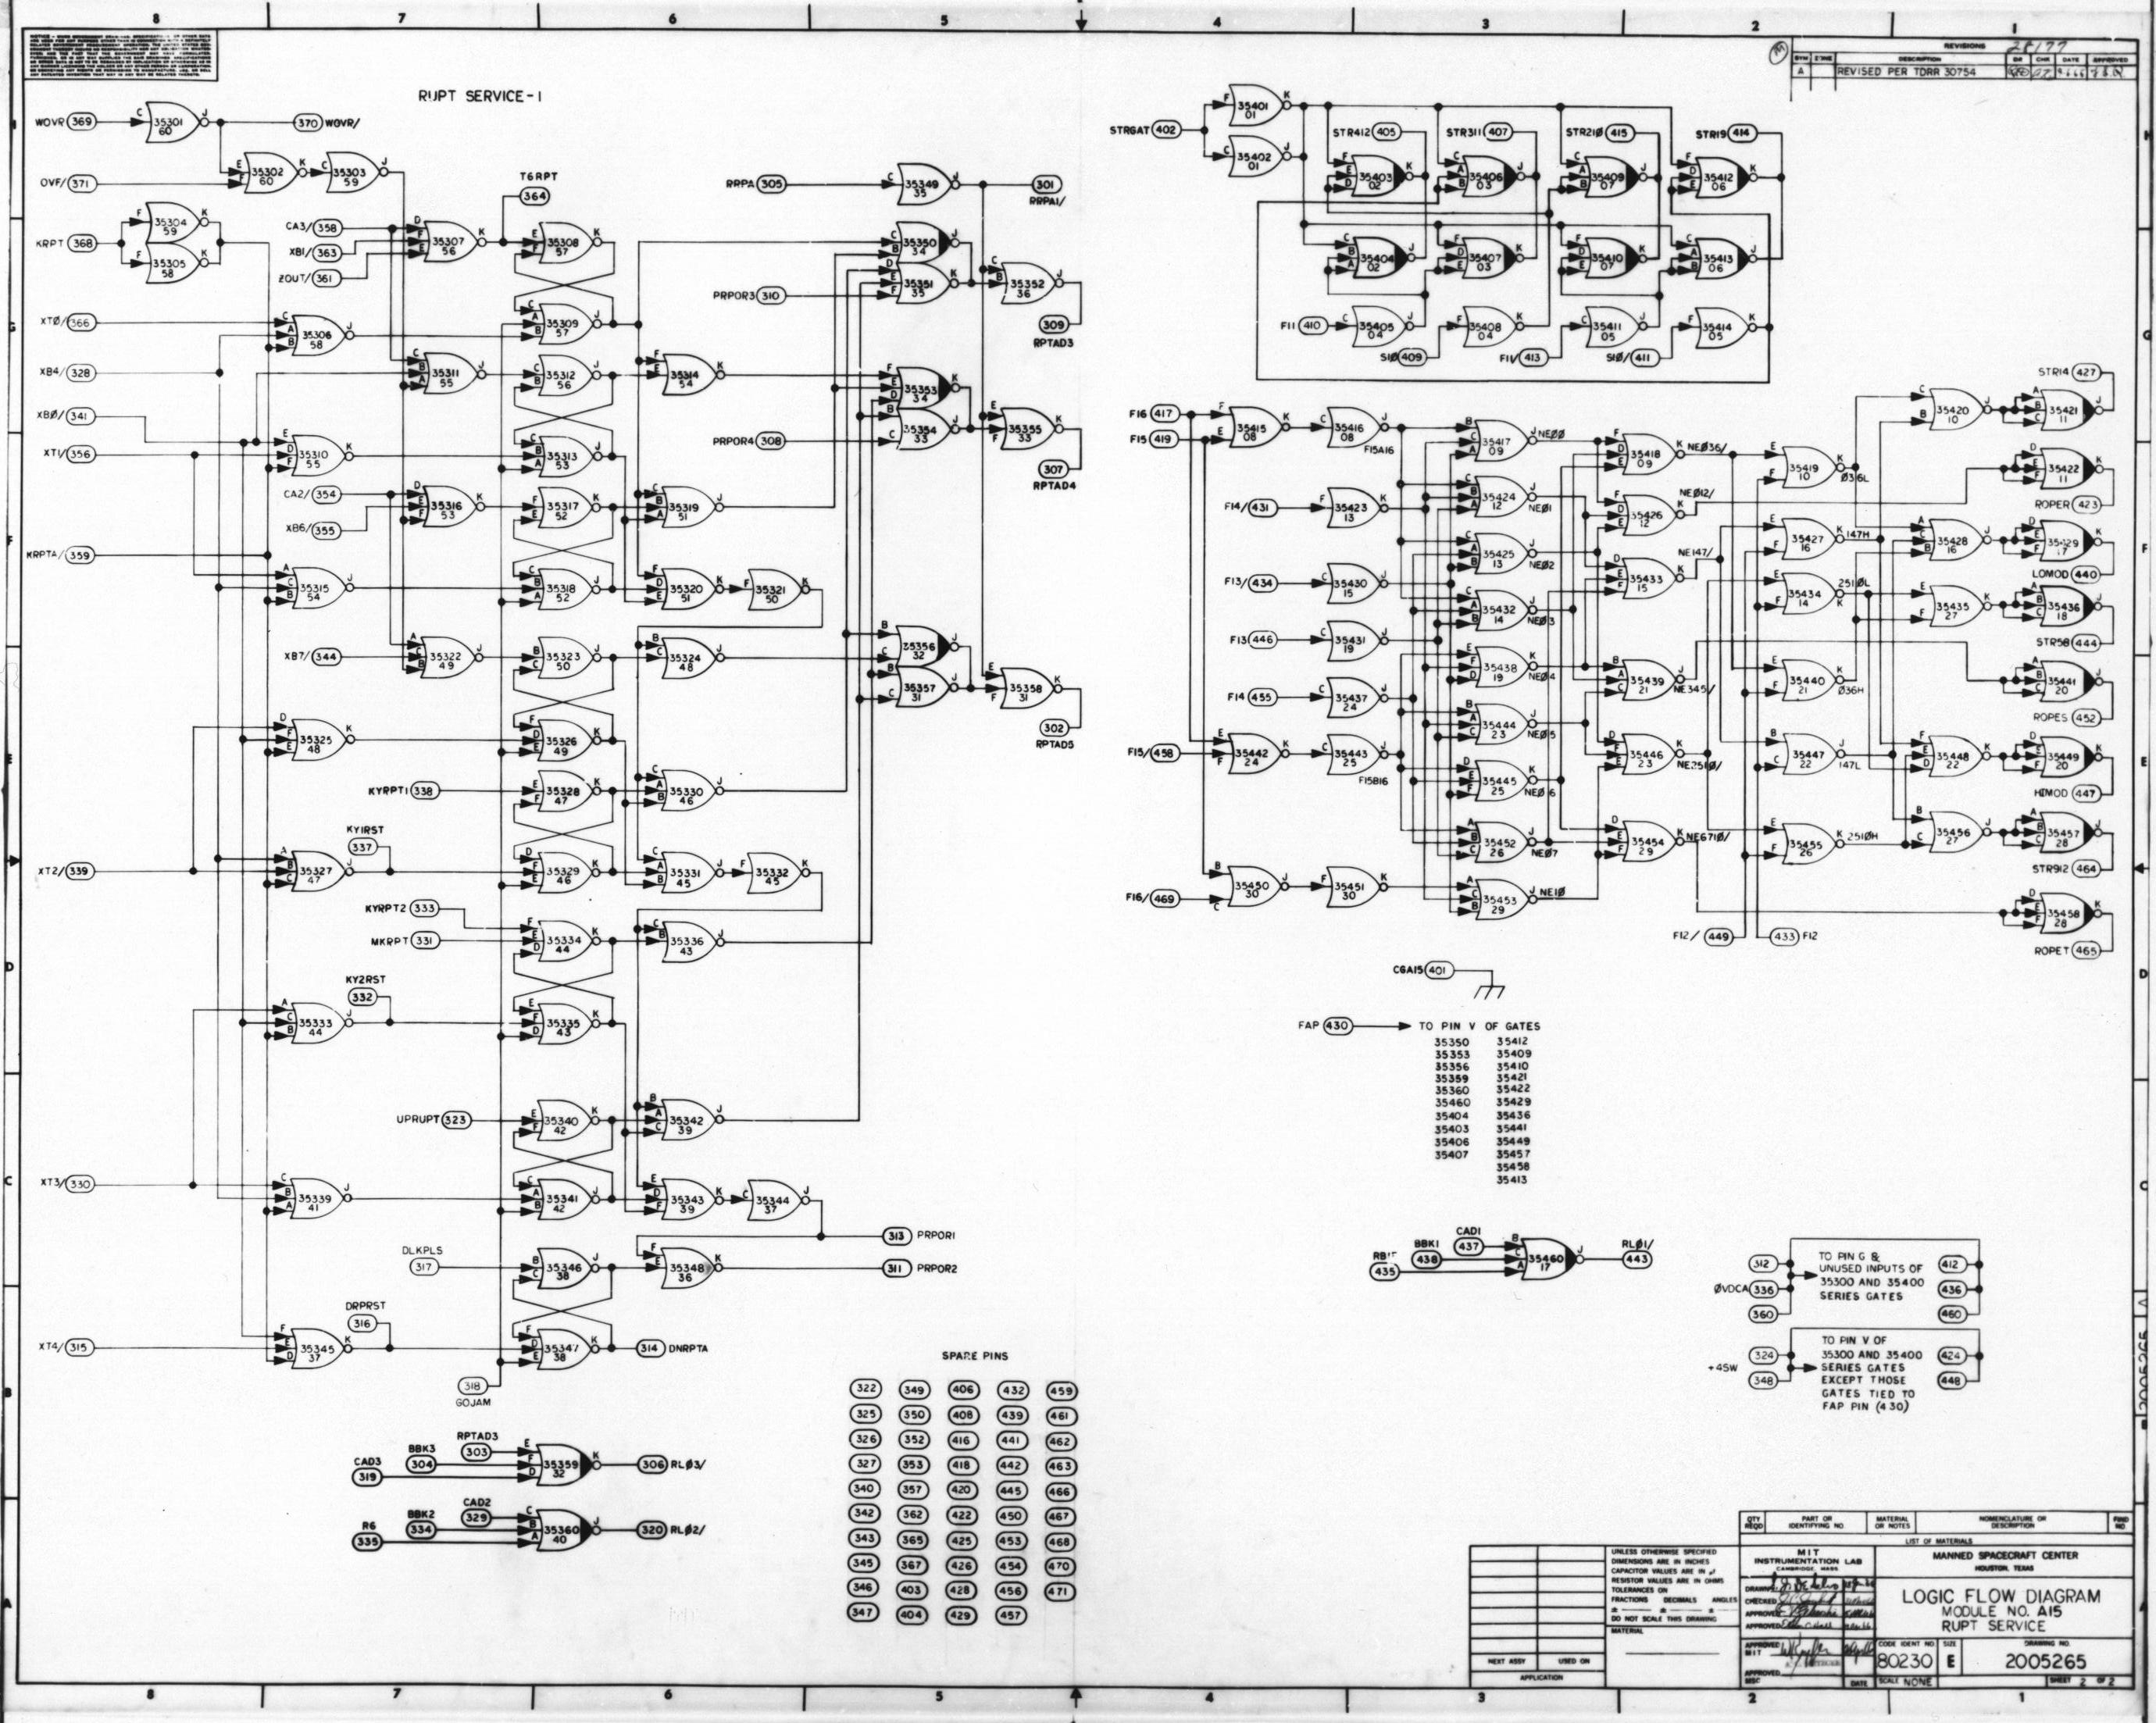 Apollo Guidance Computer Agc Schematics Draw A Logic Diagram